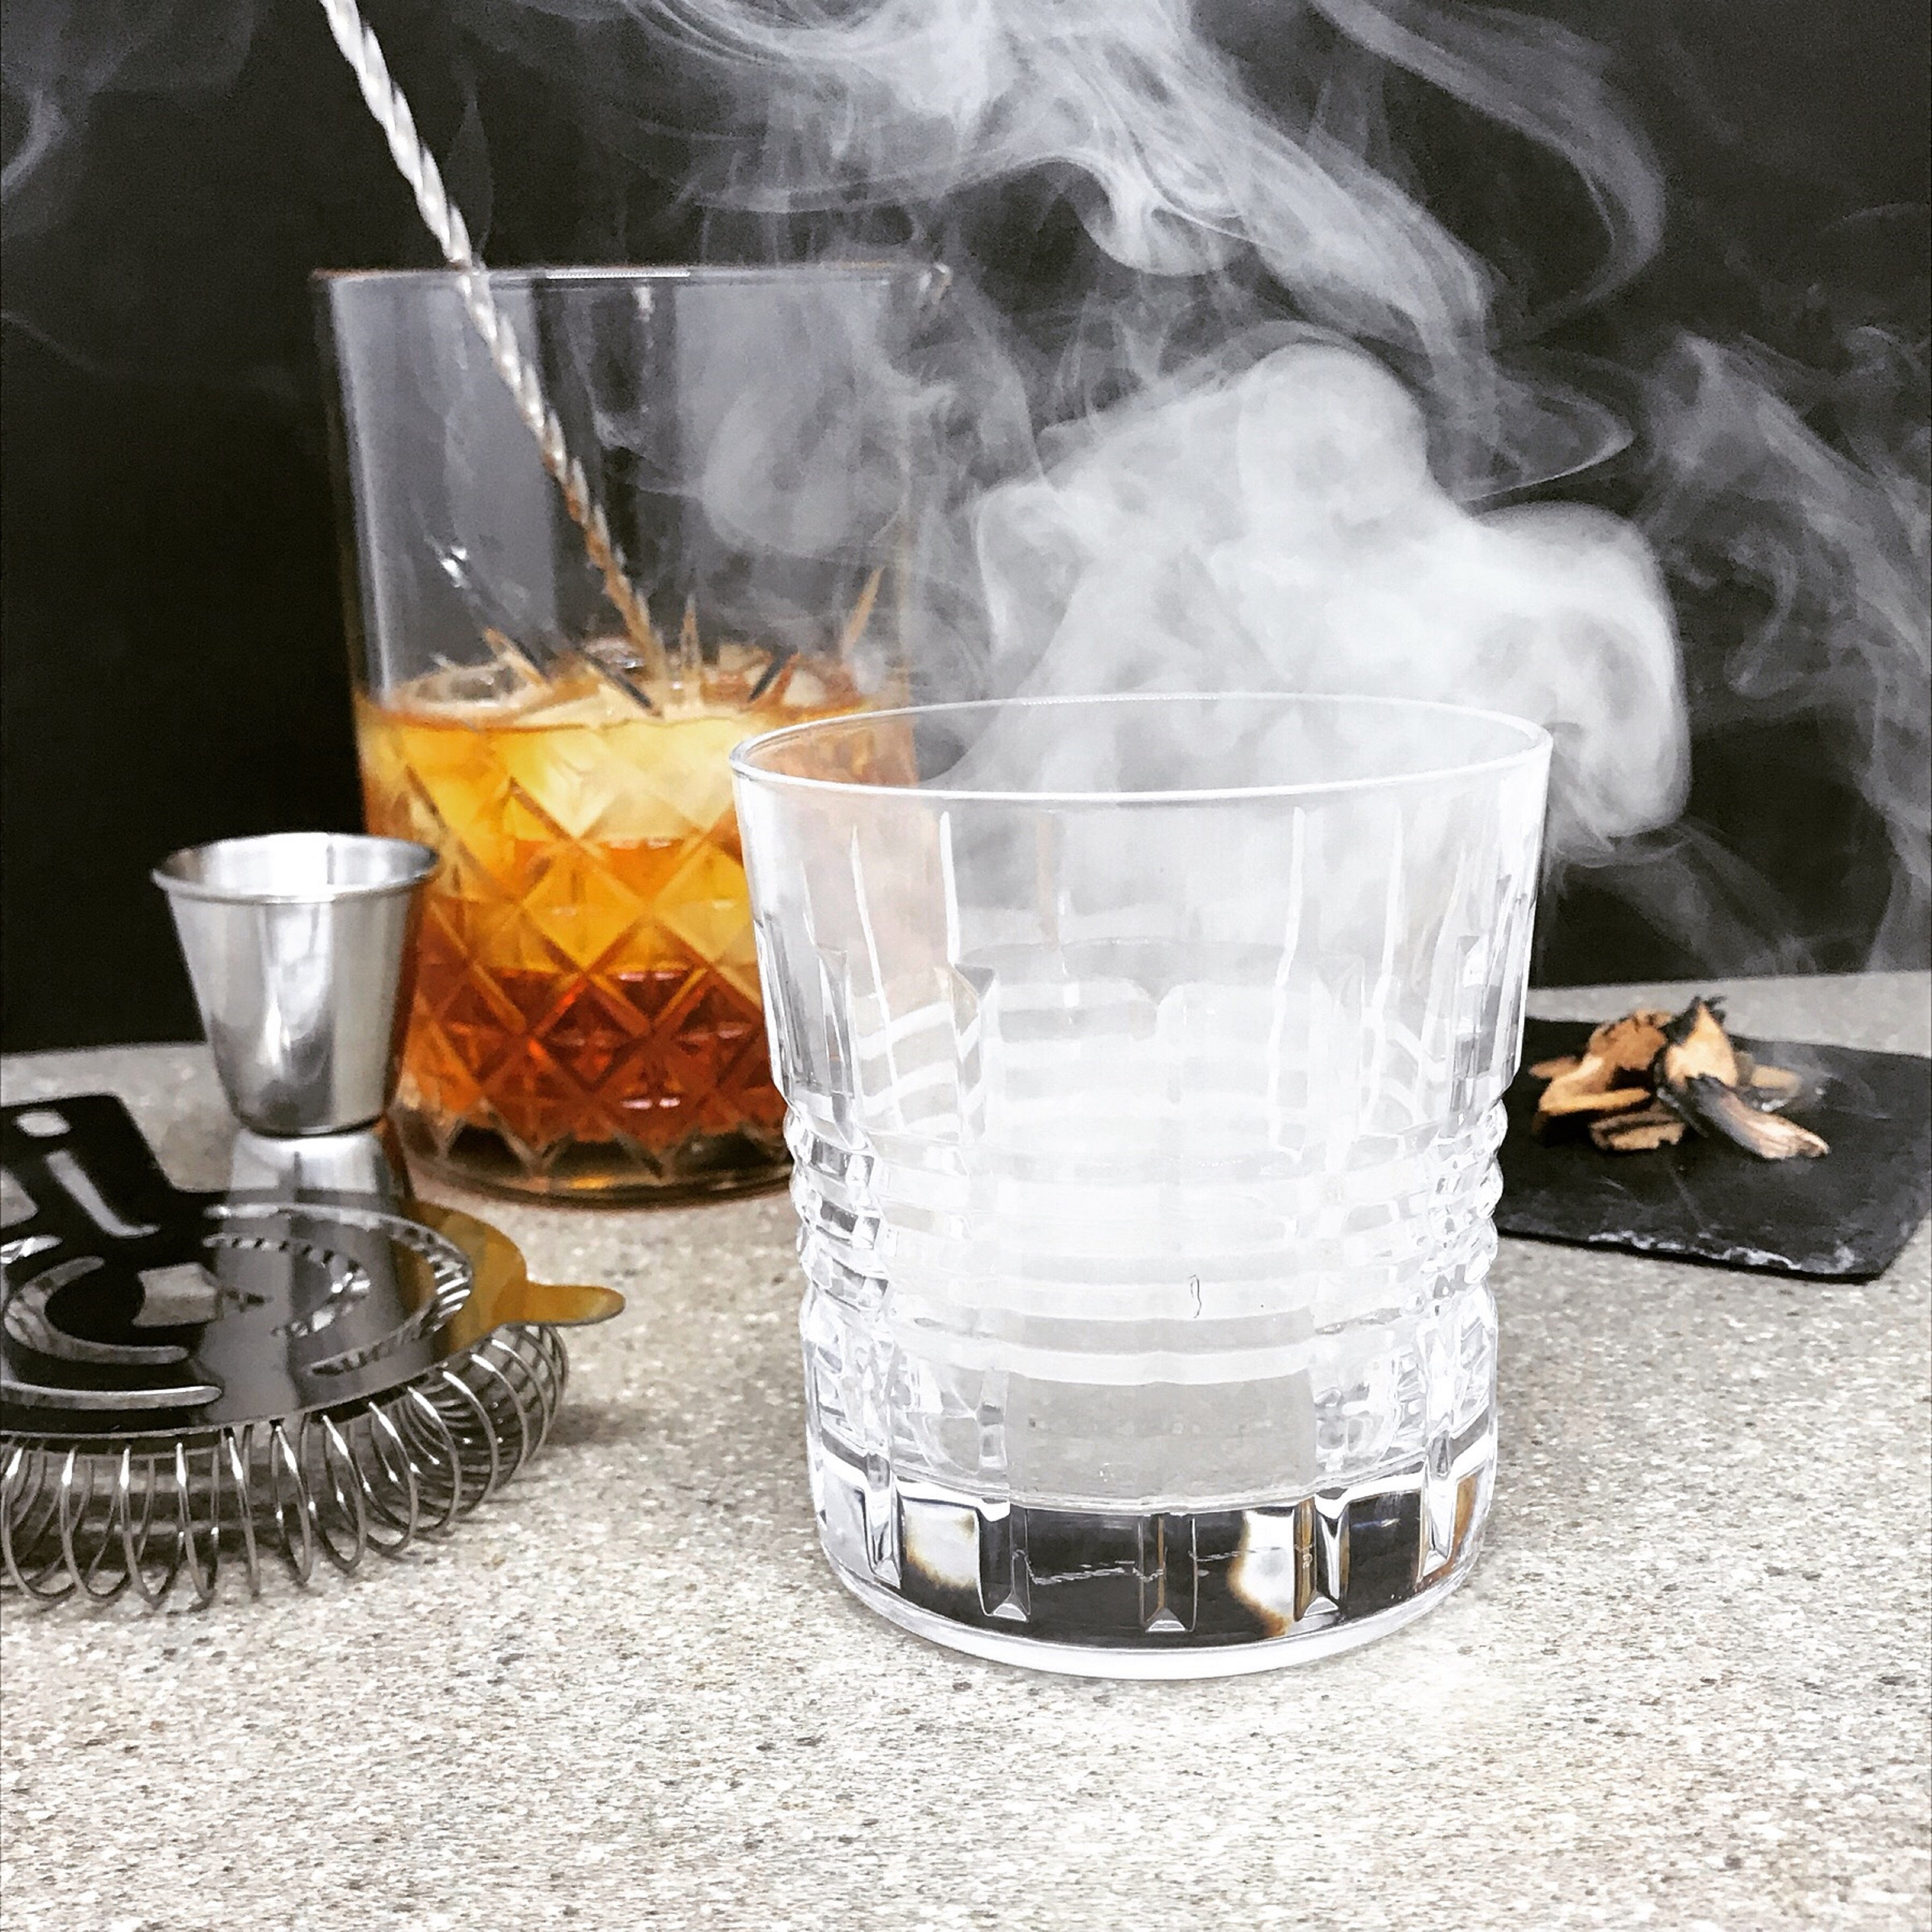 Smoked Cocktail Recipes and Gifts - And Molotov